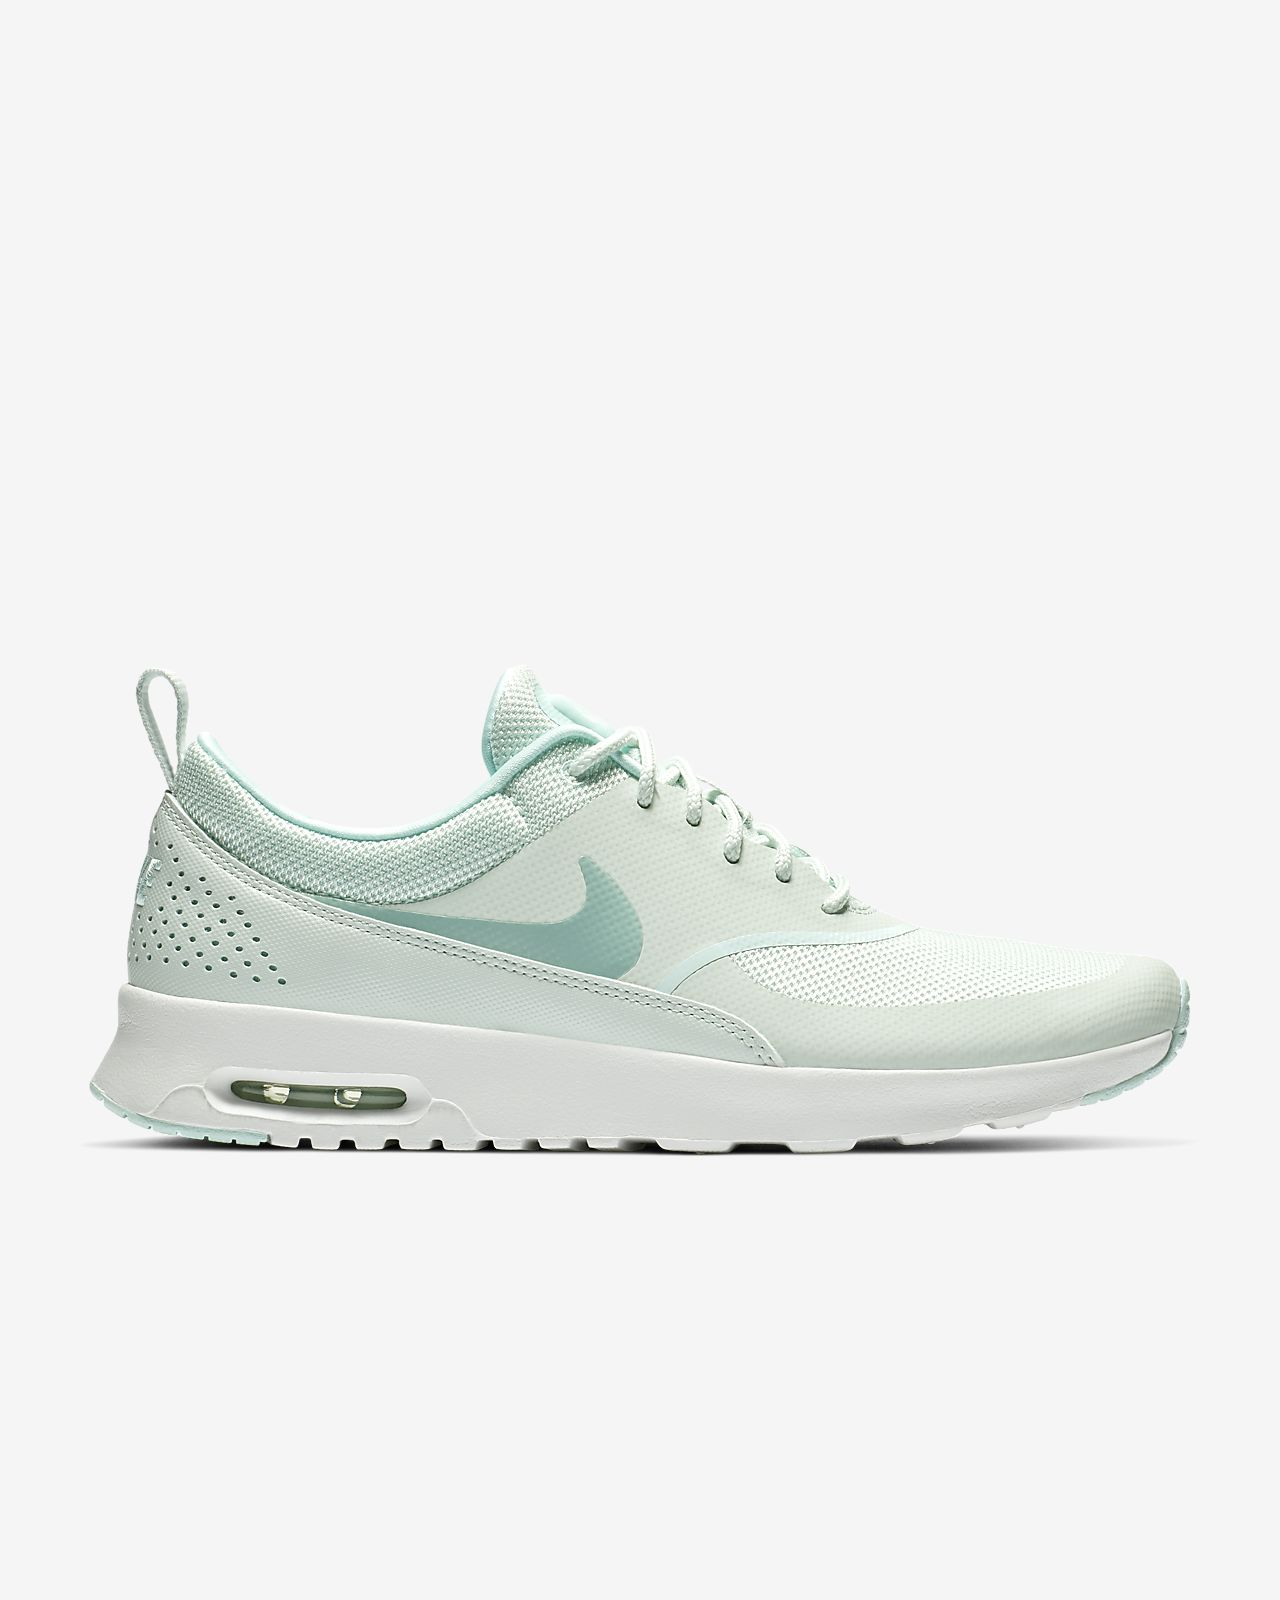 4bdde0f783c0 Nike Air Max Thea Women s Shoe. Nike.com NZ